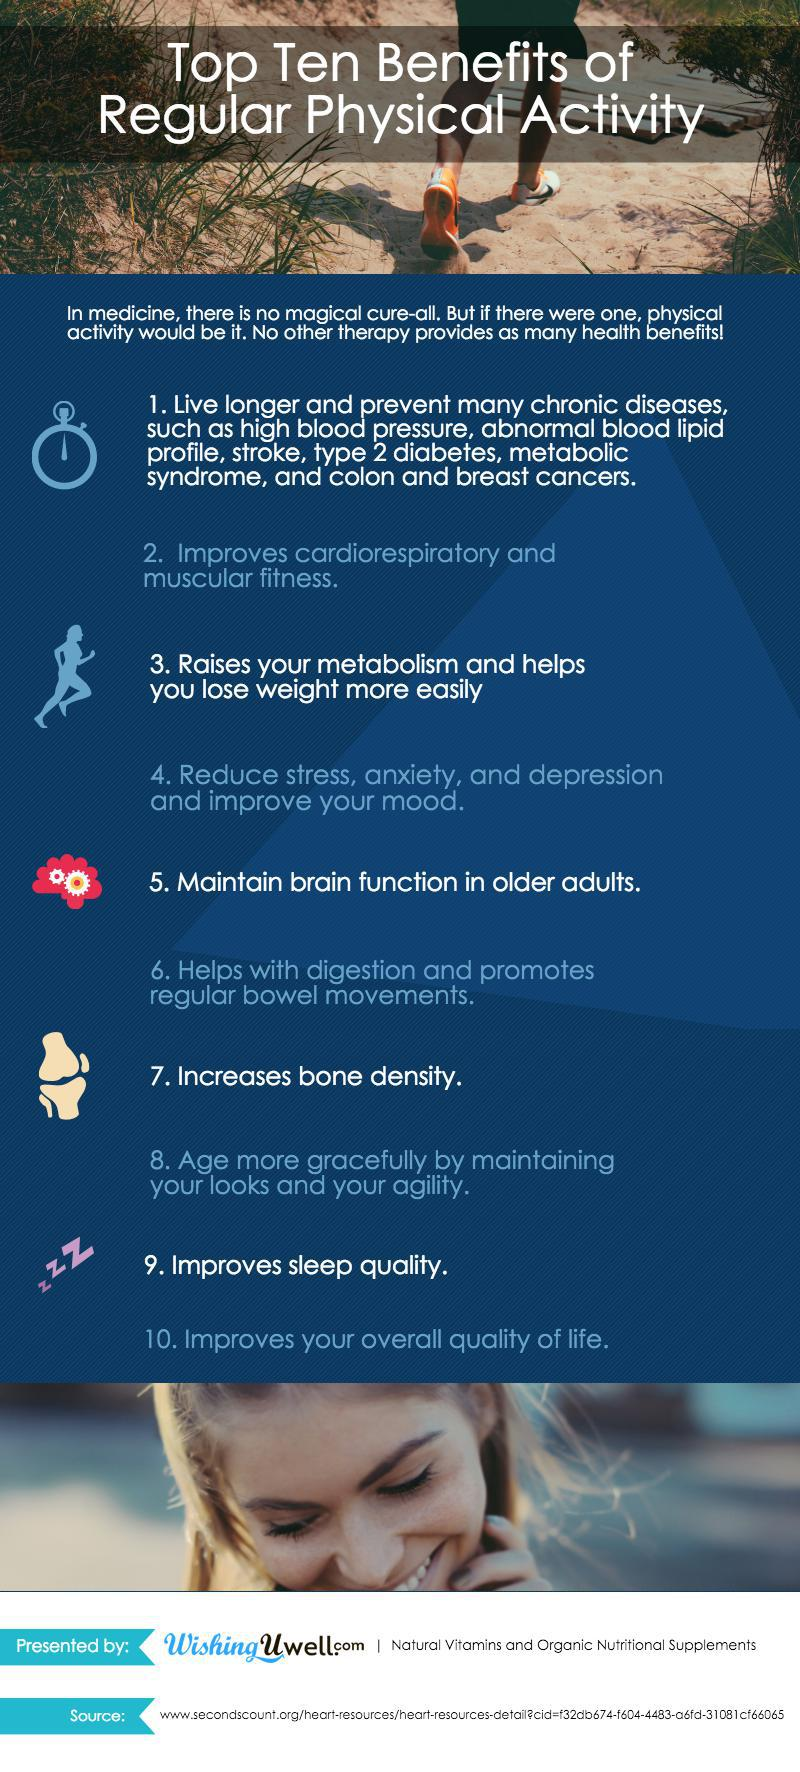 10 Important Health Benefits of Regular Physical Activity Infographic